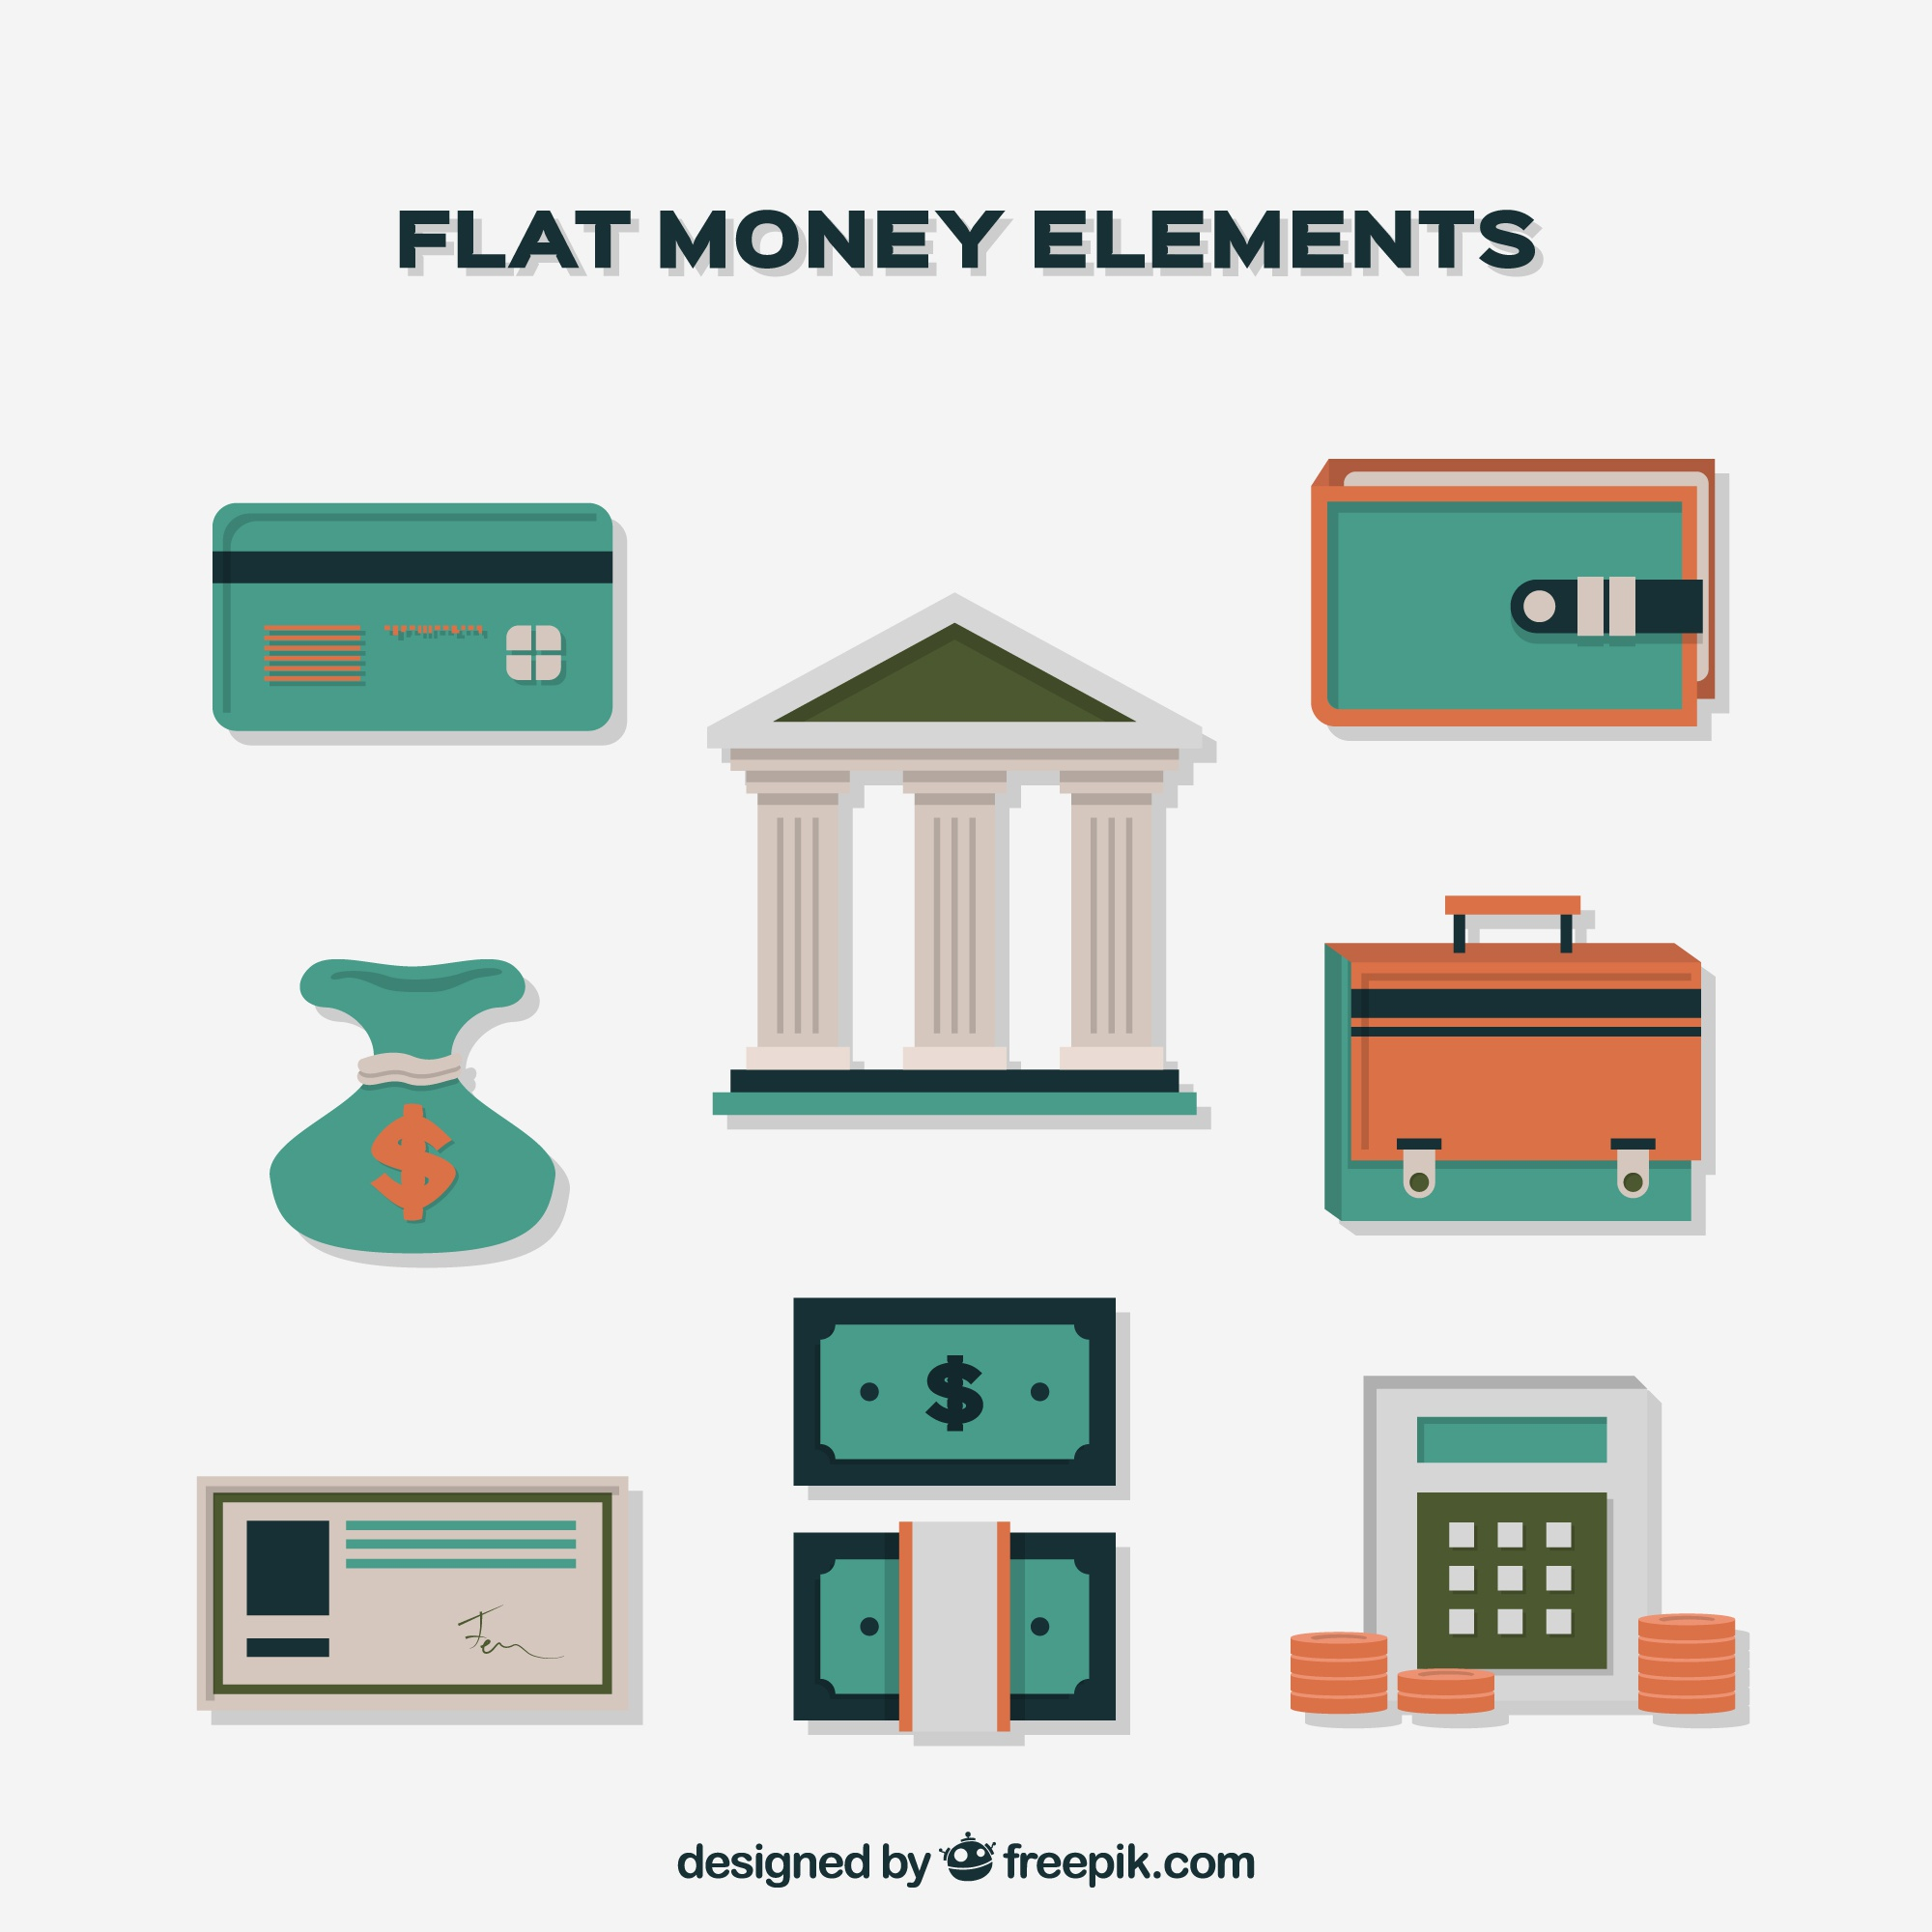 Bank and money elements in flat design